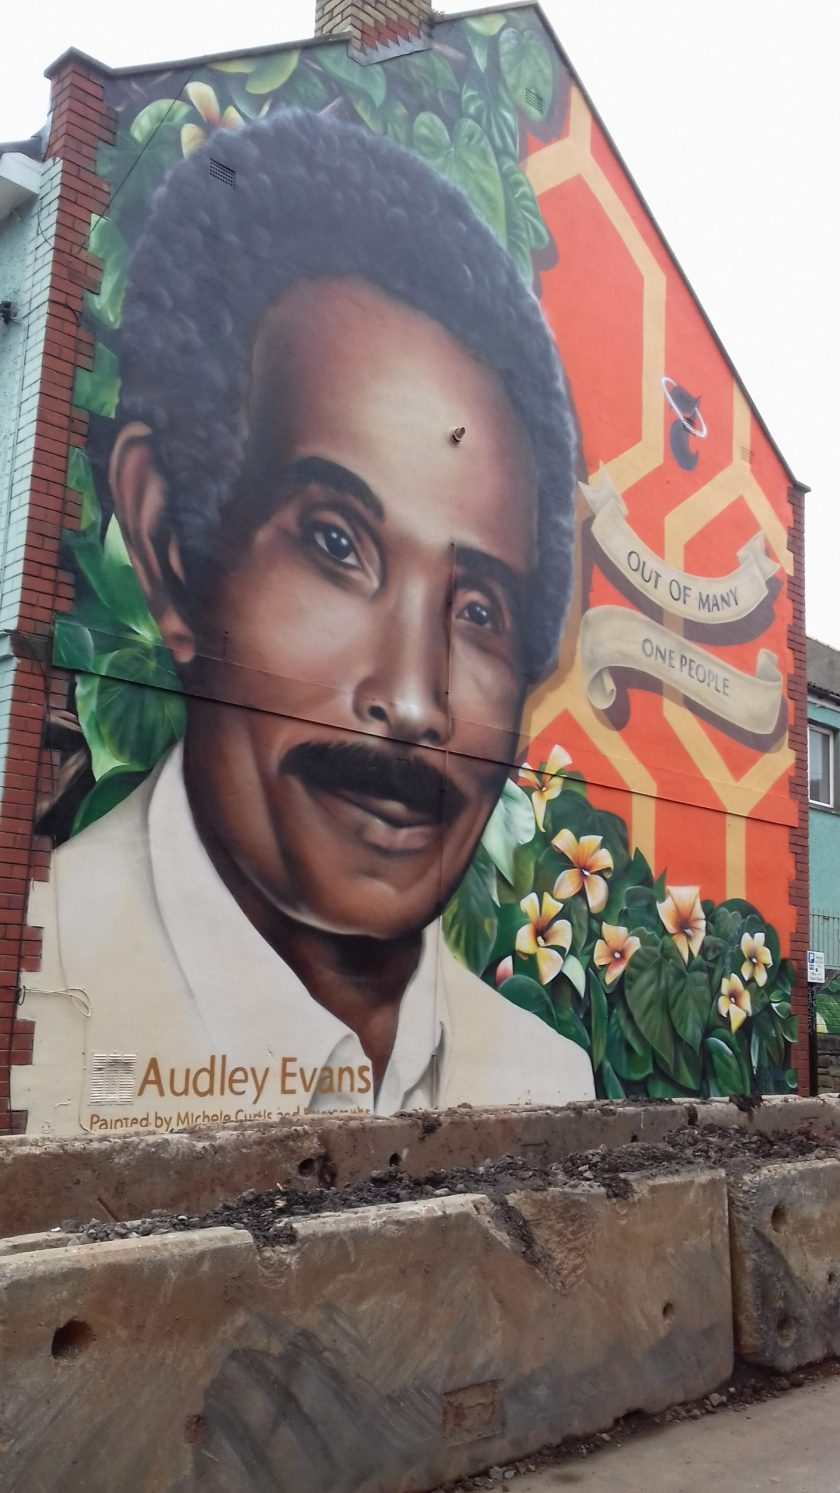 A portrait of Audley Evans on the side of a house